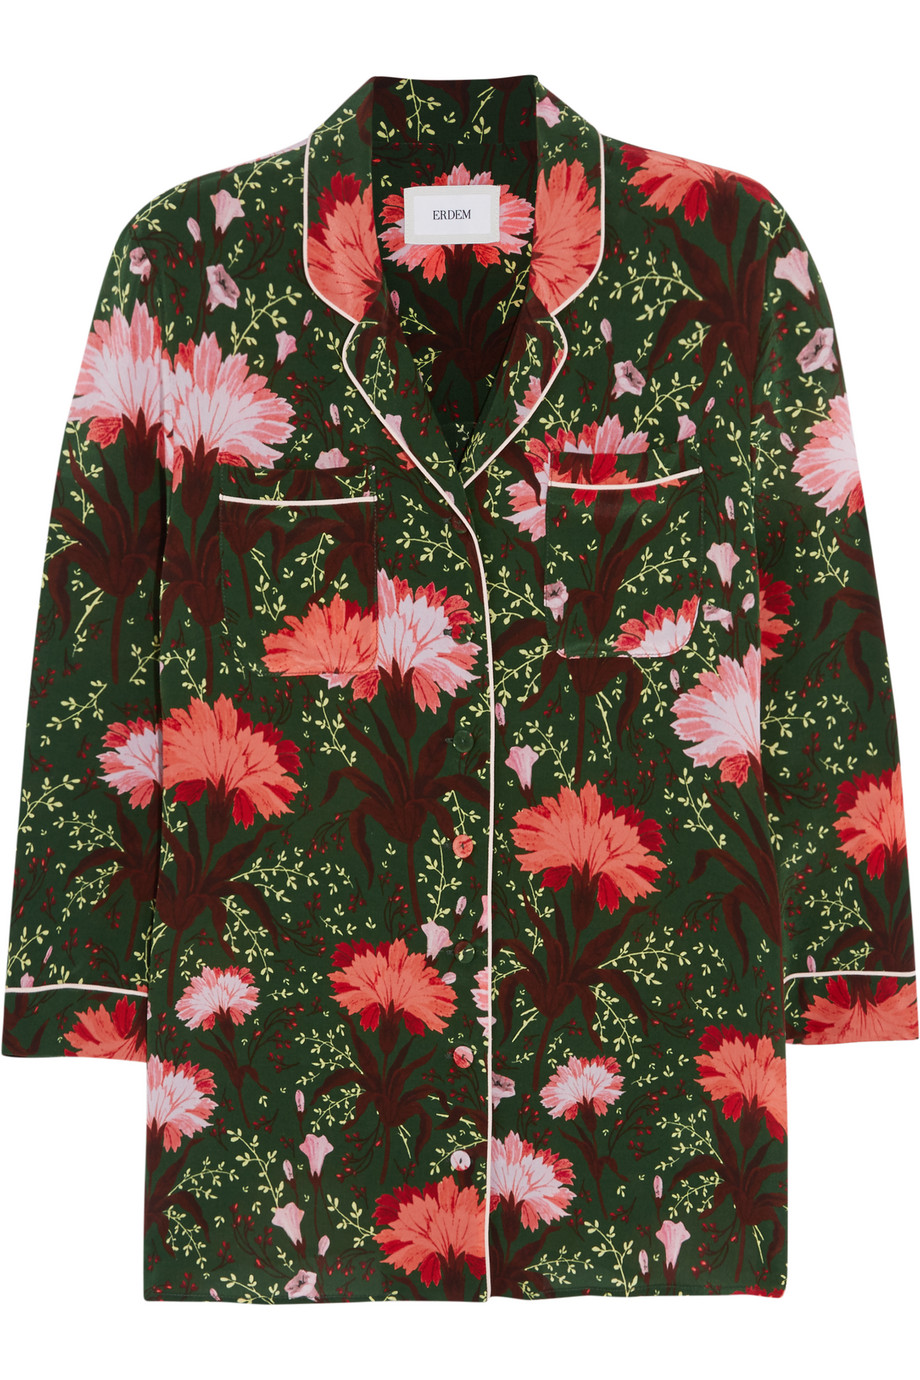 Erdem Ray Floral-Print Silk-Satin Blouse, Green/Pink, Women's, Size: 10